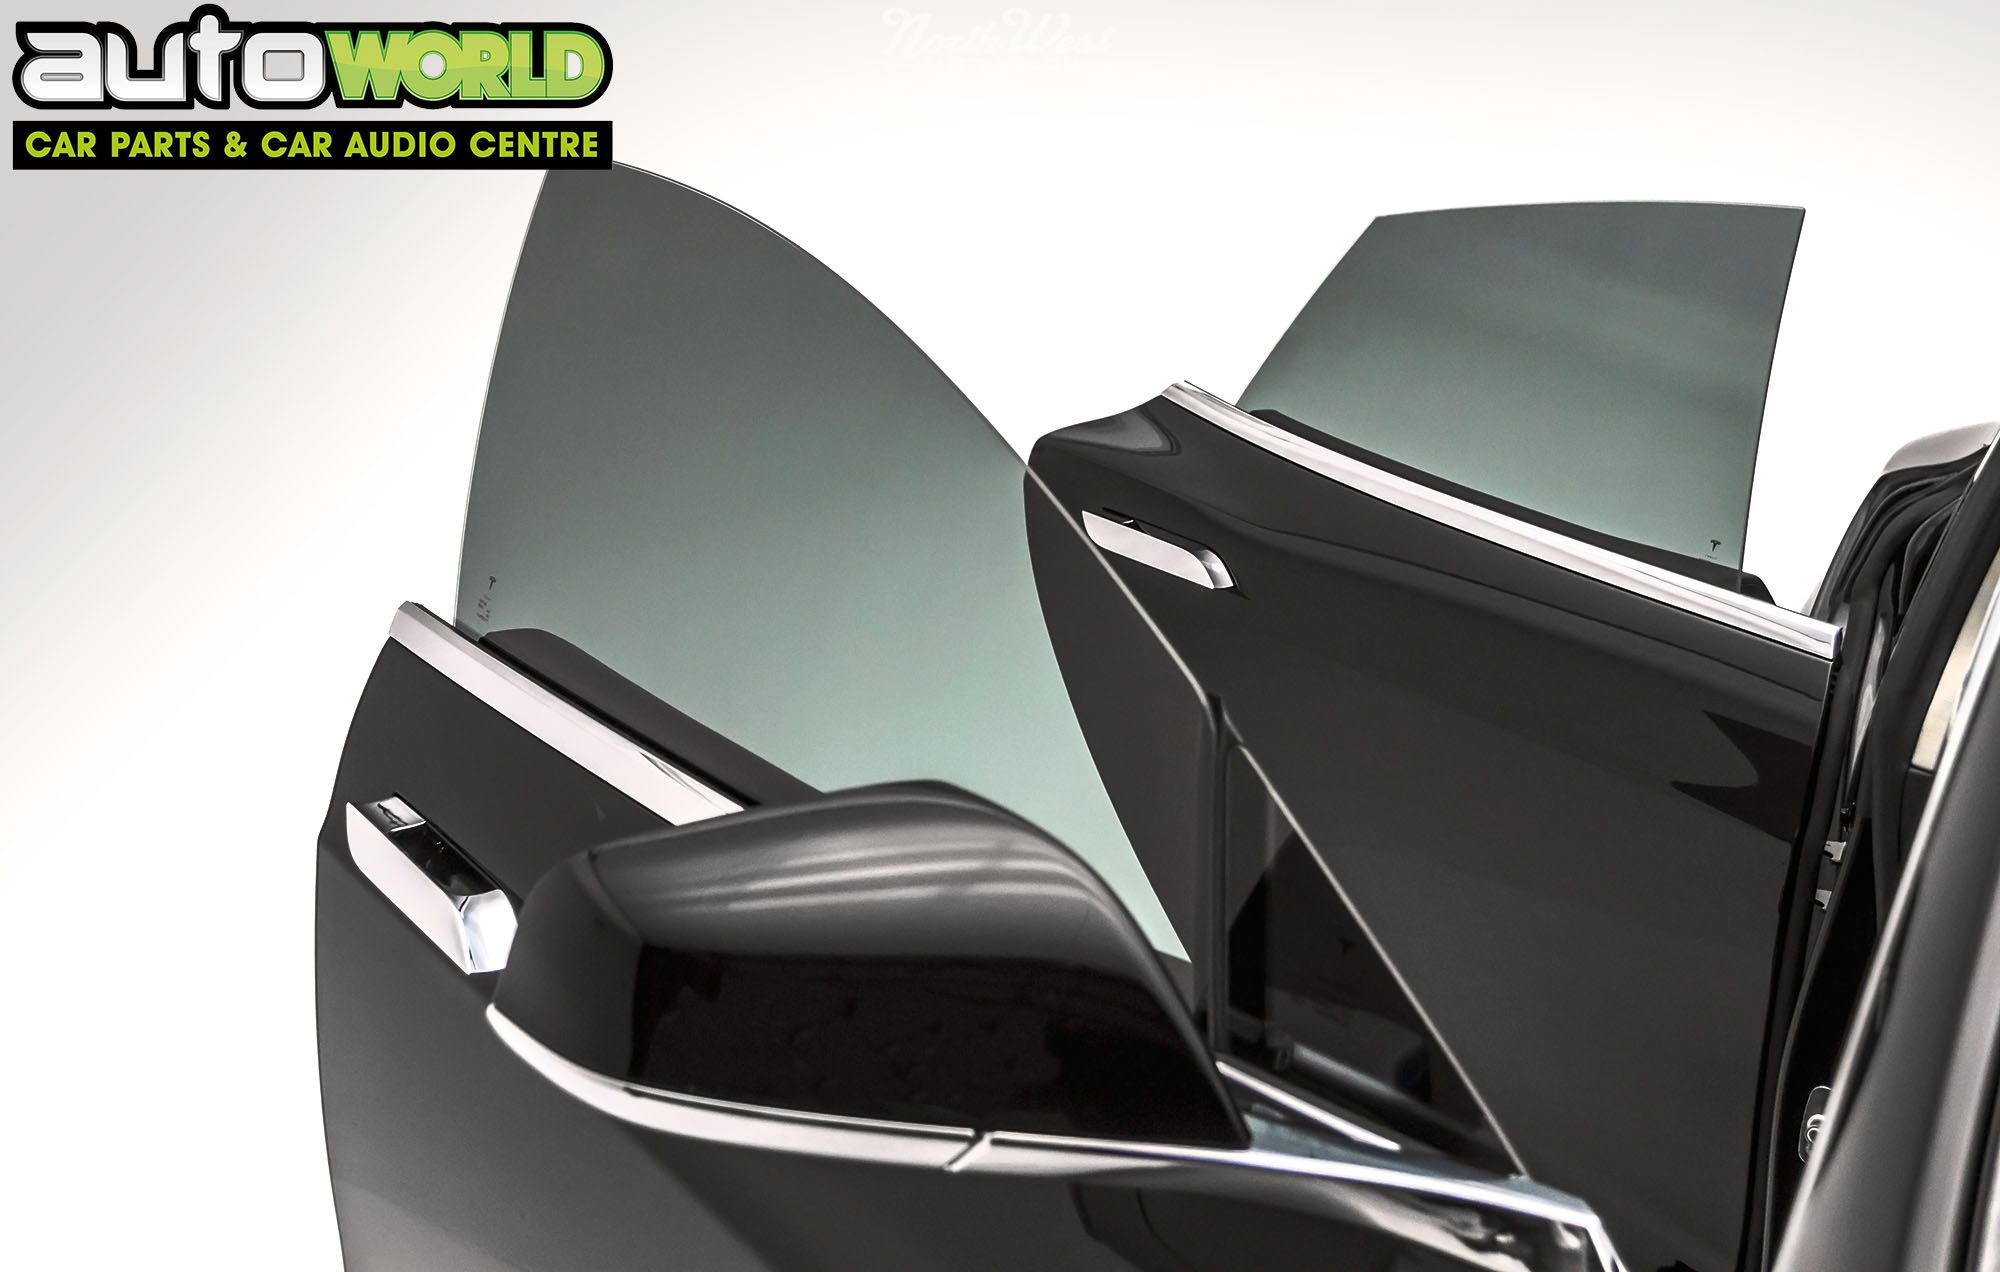 Window Tint Film For Cars